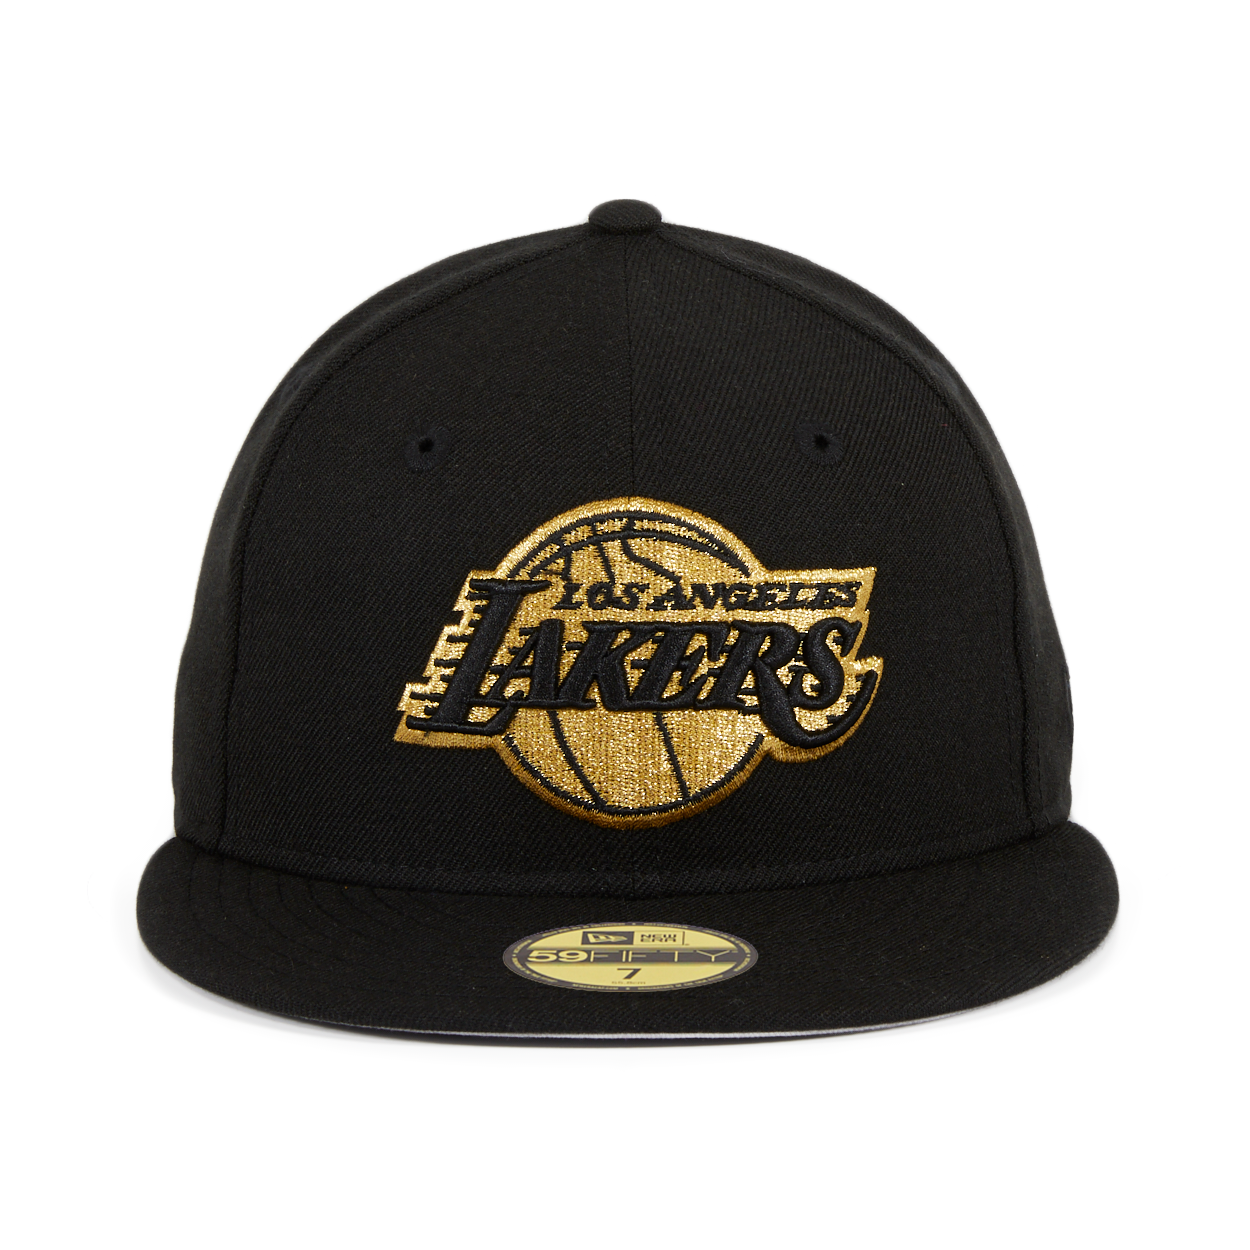 Exclusive New Era 59Fifty Los Angeles Lakers Hat - Black 6cac507b8b1